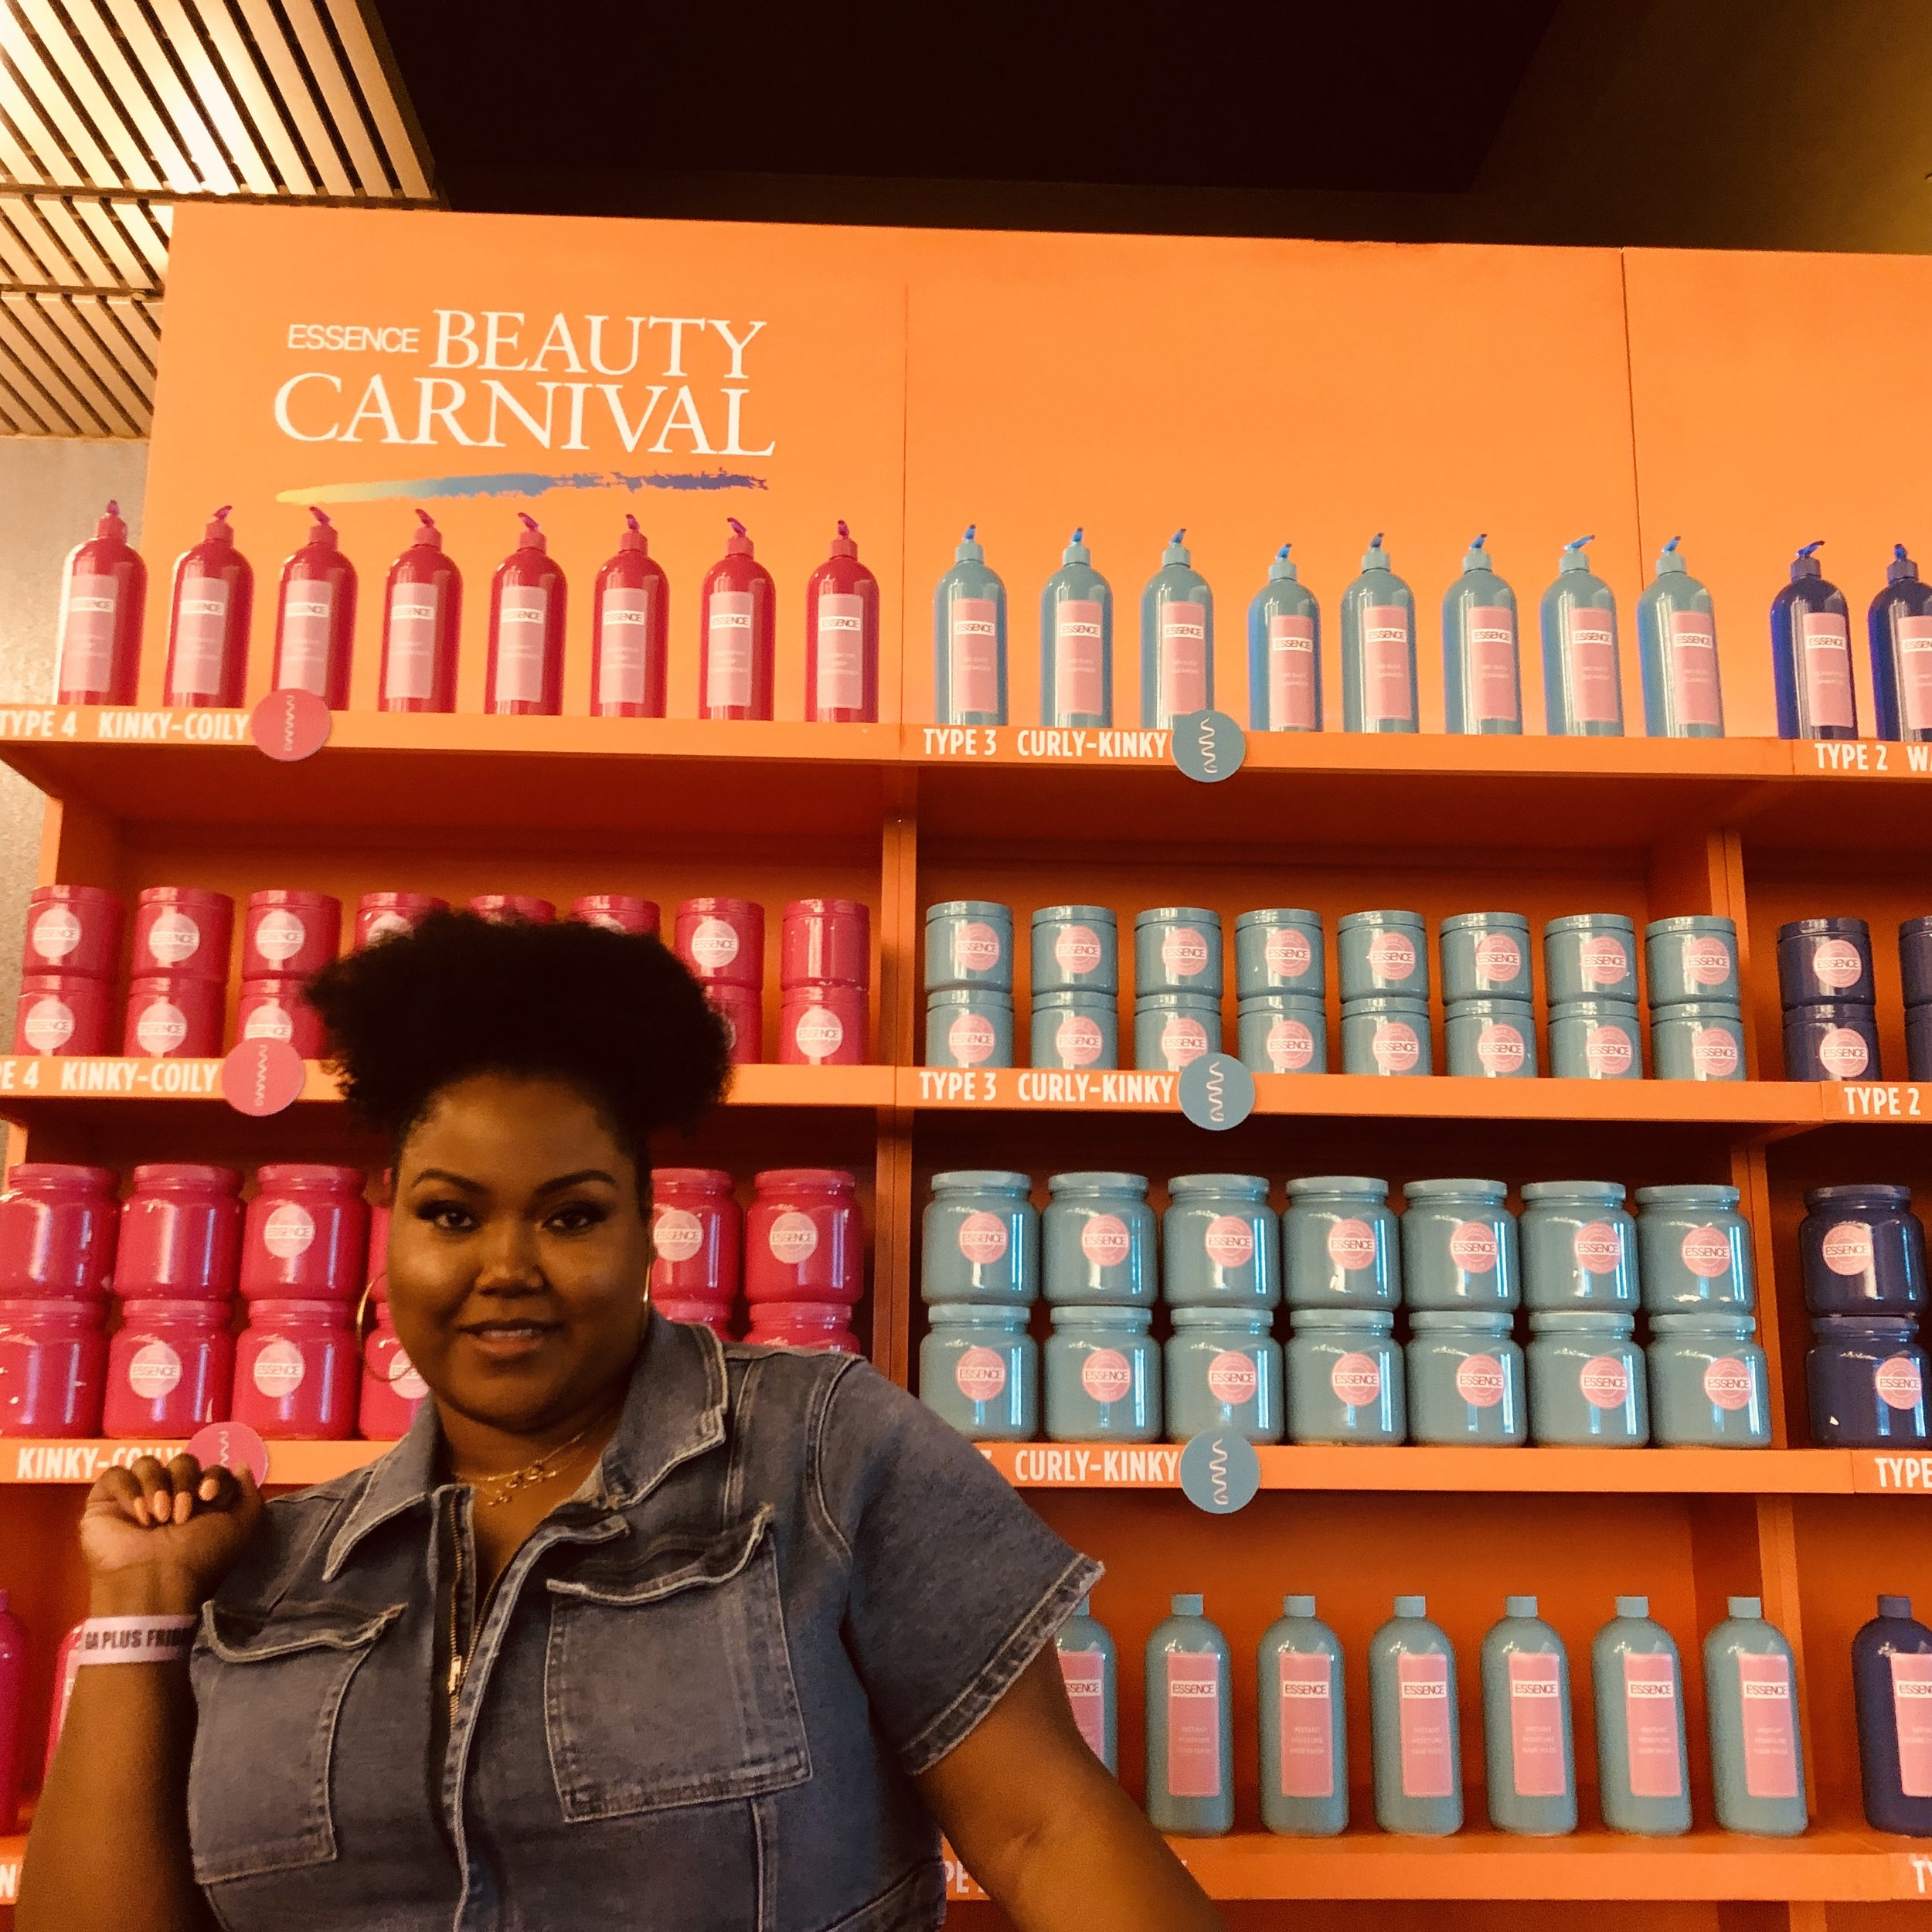 The JD Series at Essence Beauty Carnival